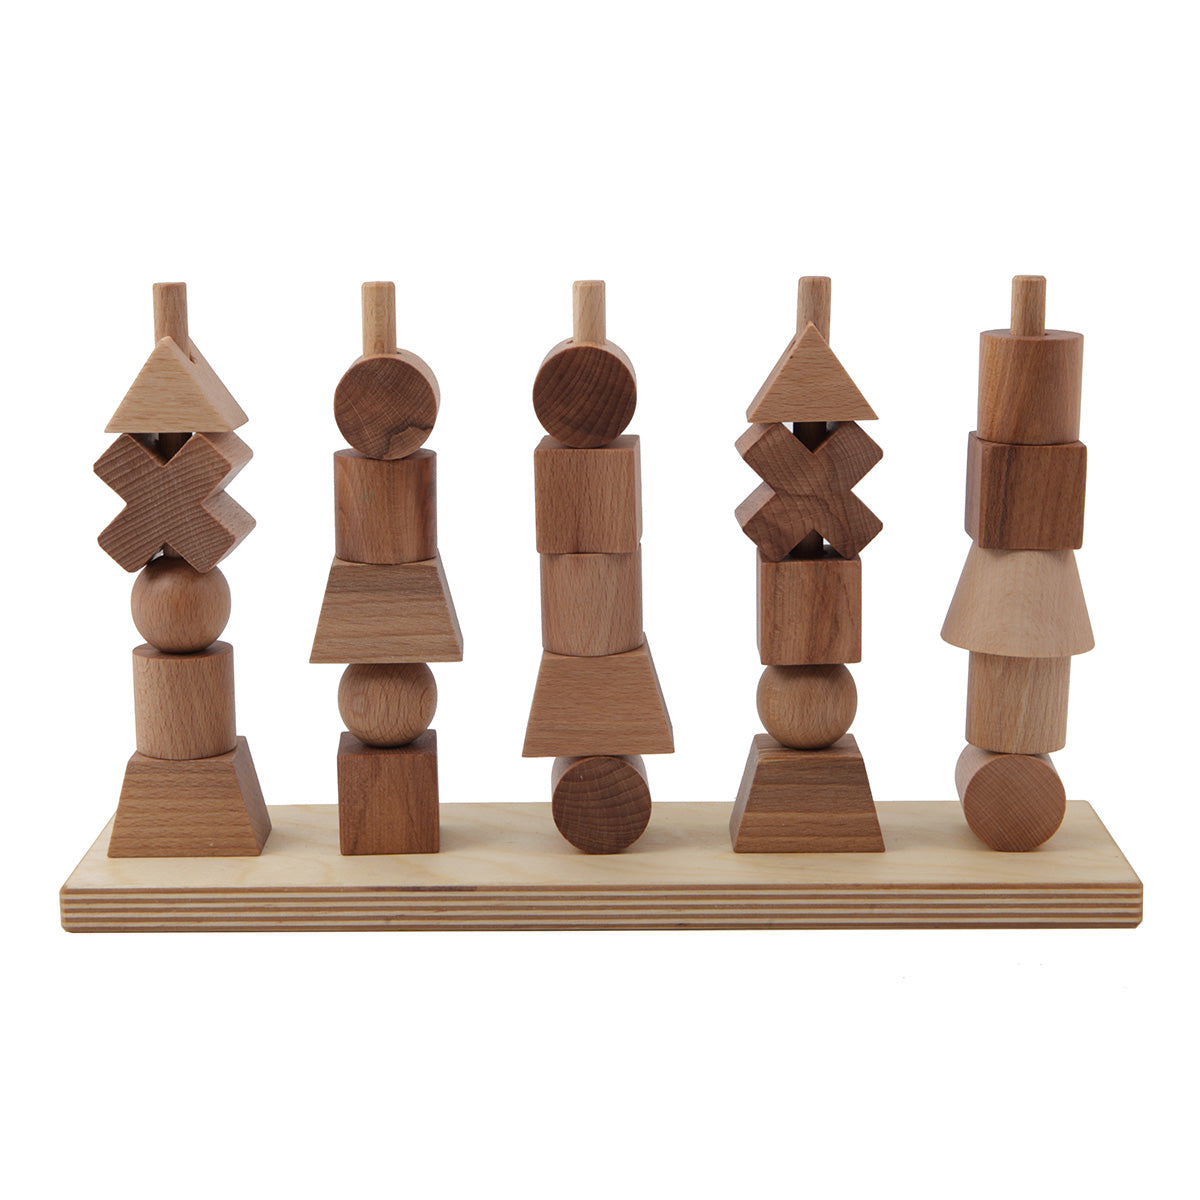 Natural Wooden Shape Stacker---Wooden Story-Natural Play-Natural Nursery---Play-Handmade---Eco Friendly Toys-Eco Friendly- Play---Handmade- Sustainable Design